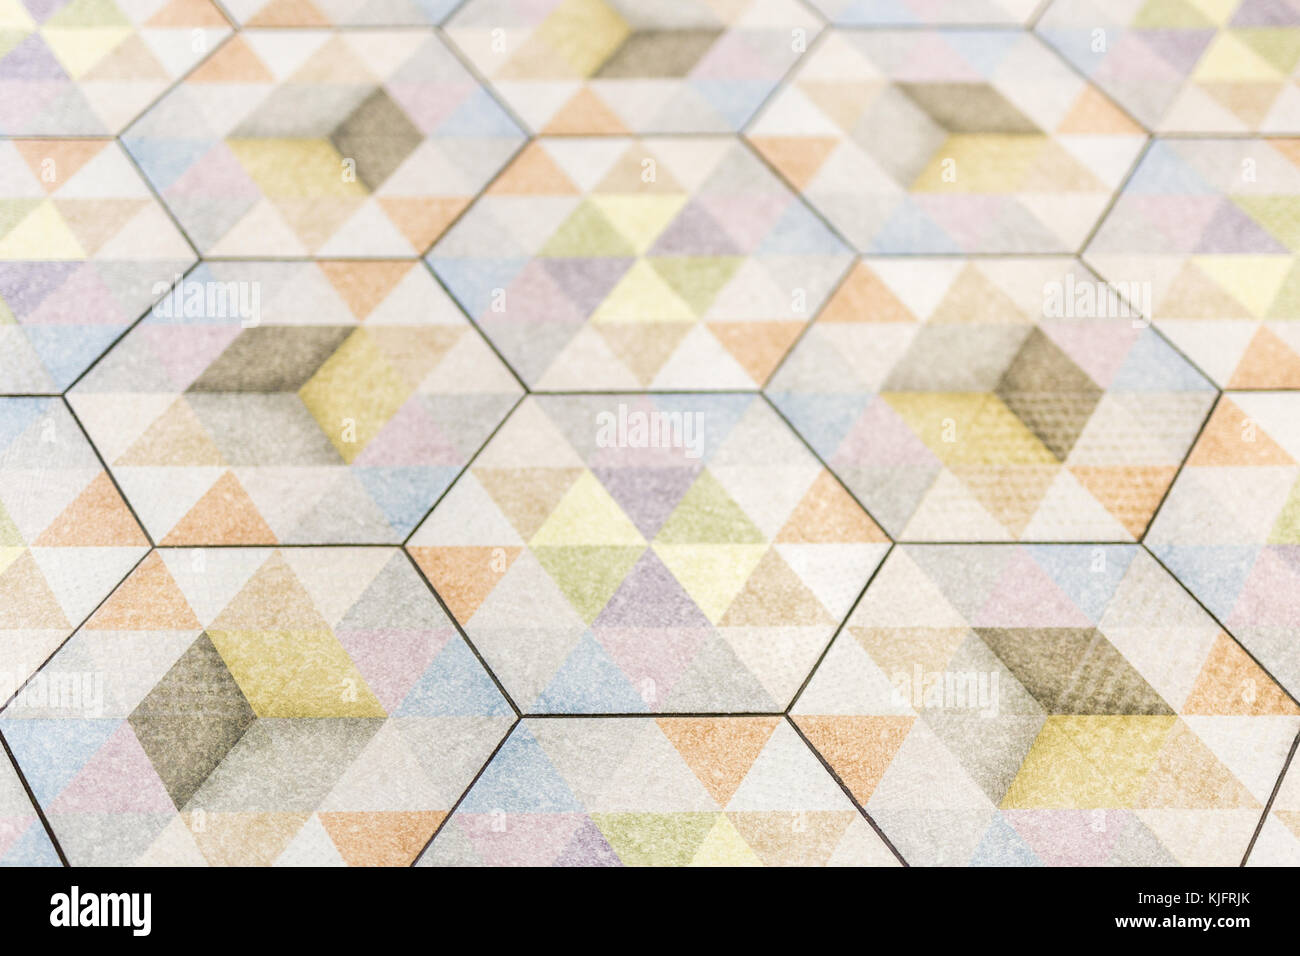 Abstract image of decorative colorful hexagon floor tile Stock Photo ...